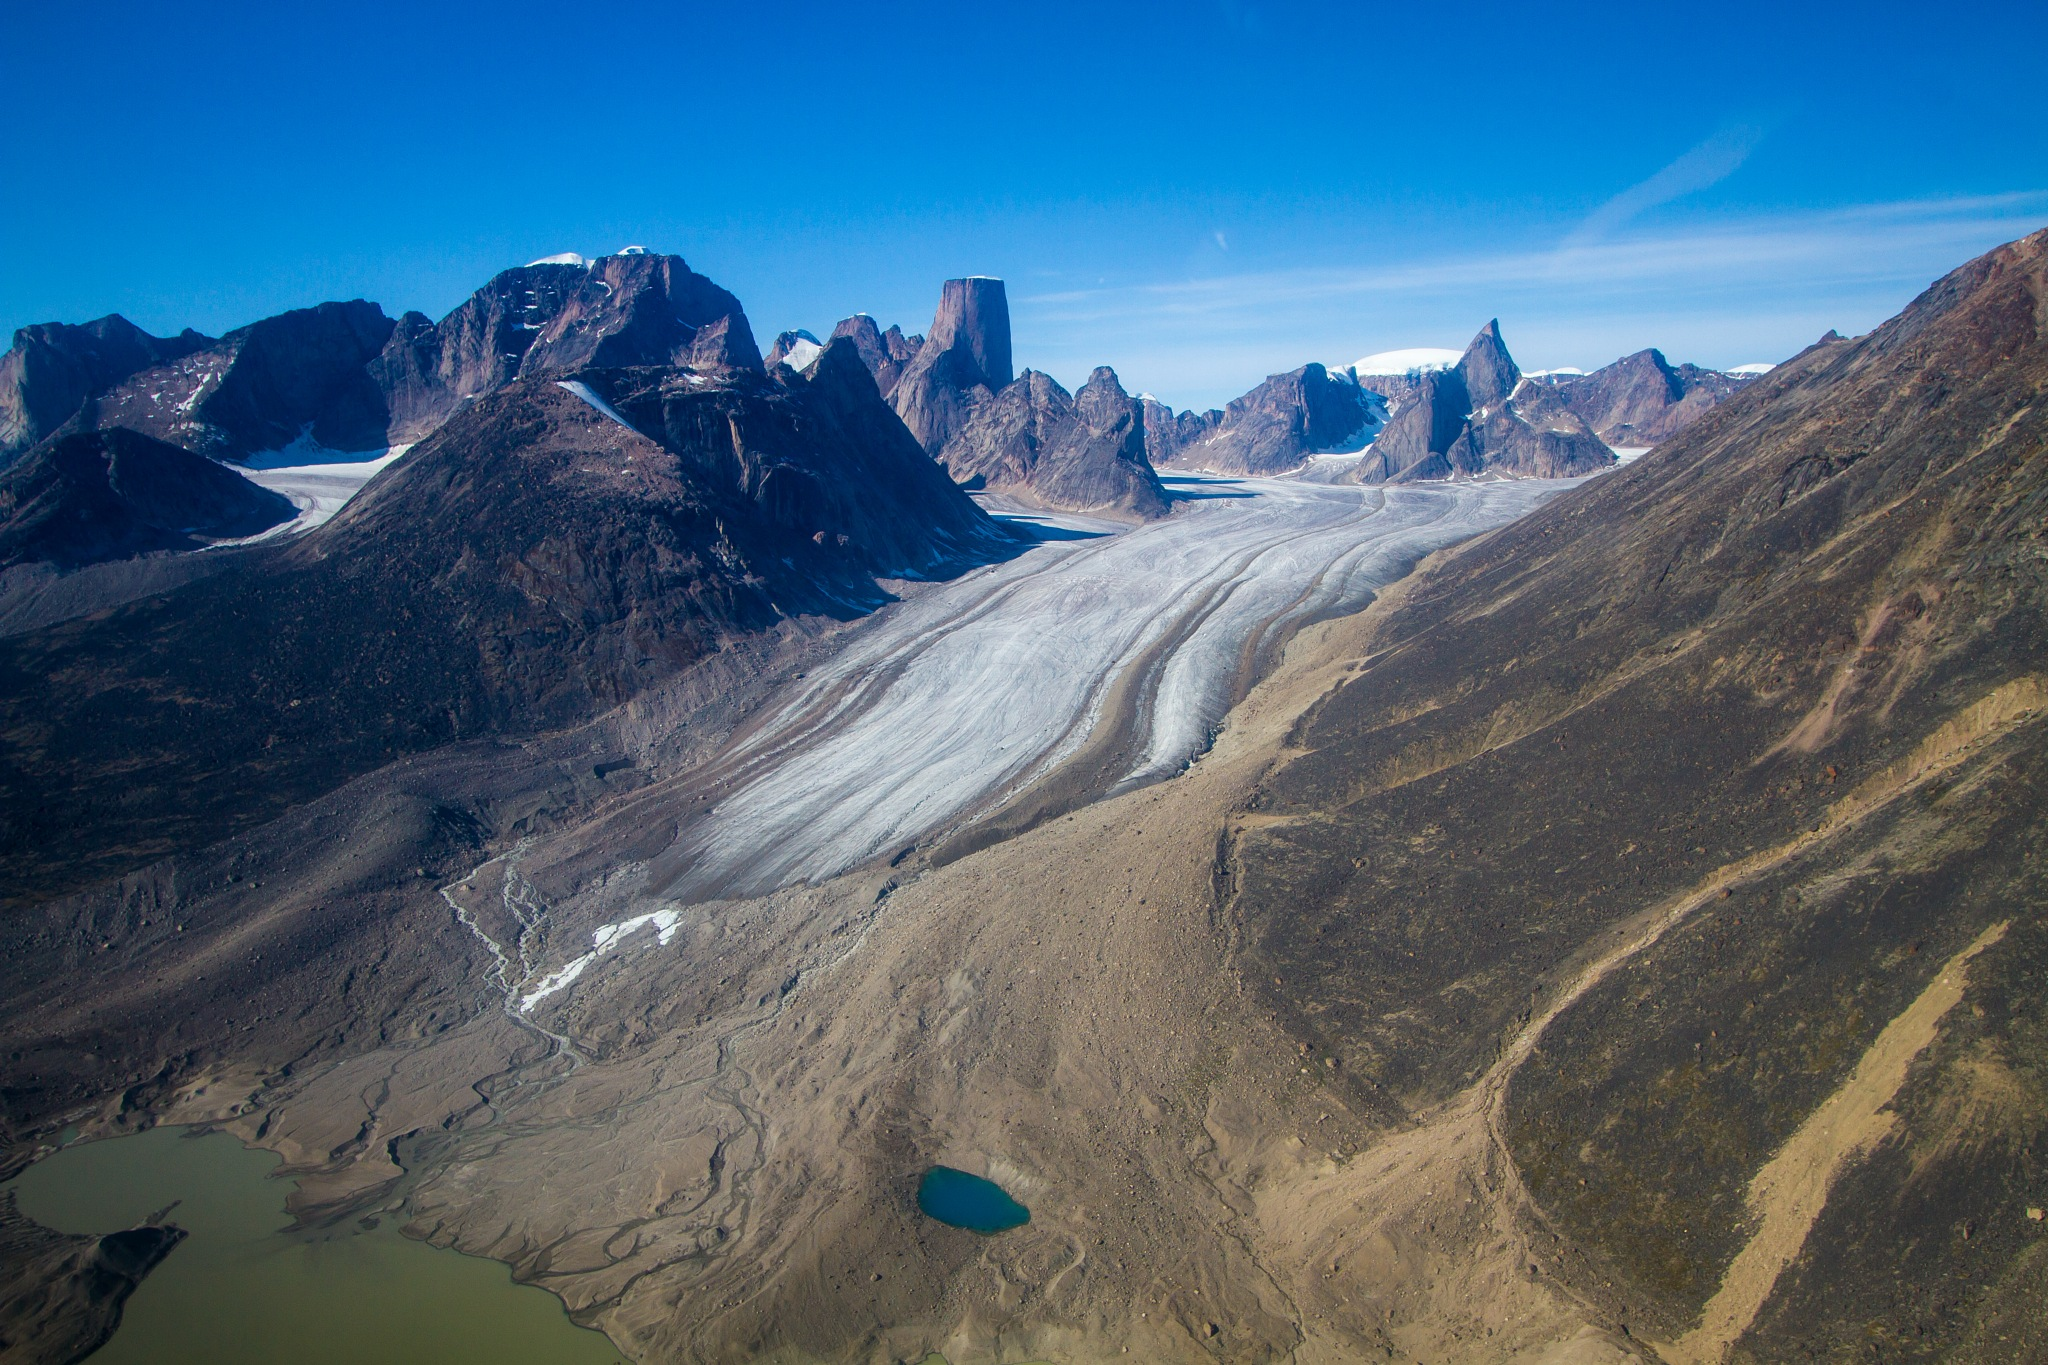 Glacier in Auyuittuq national park, Nunavut. CAN. by StephaneCaron